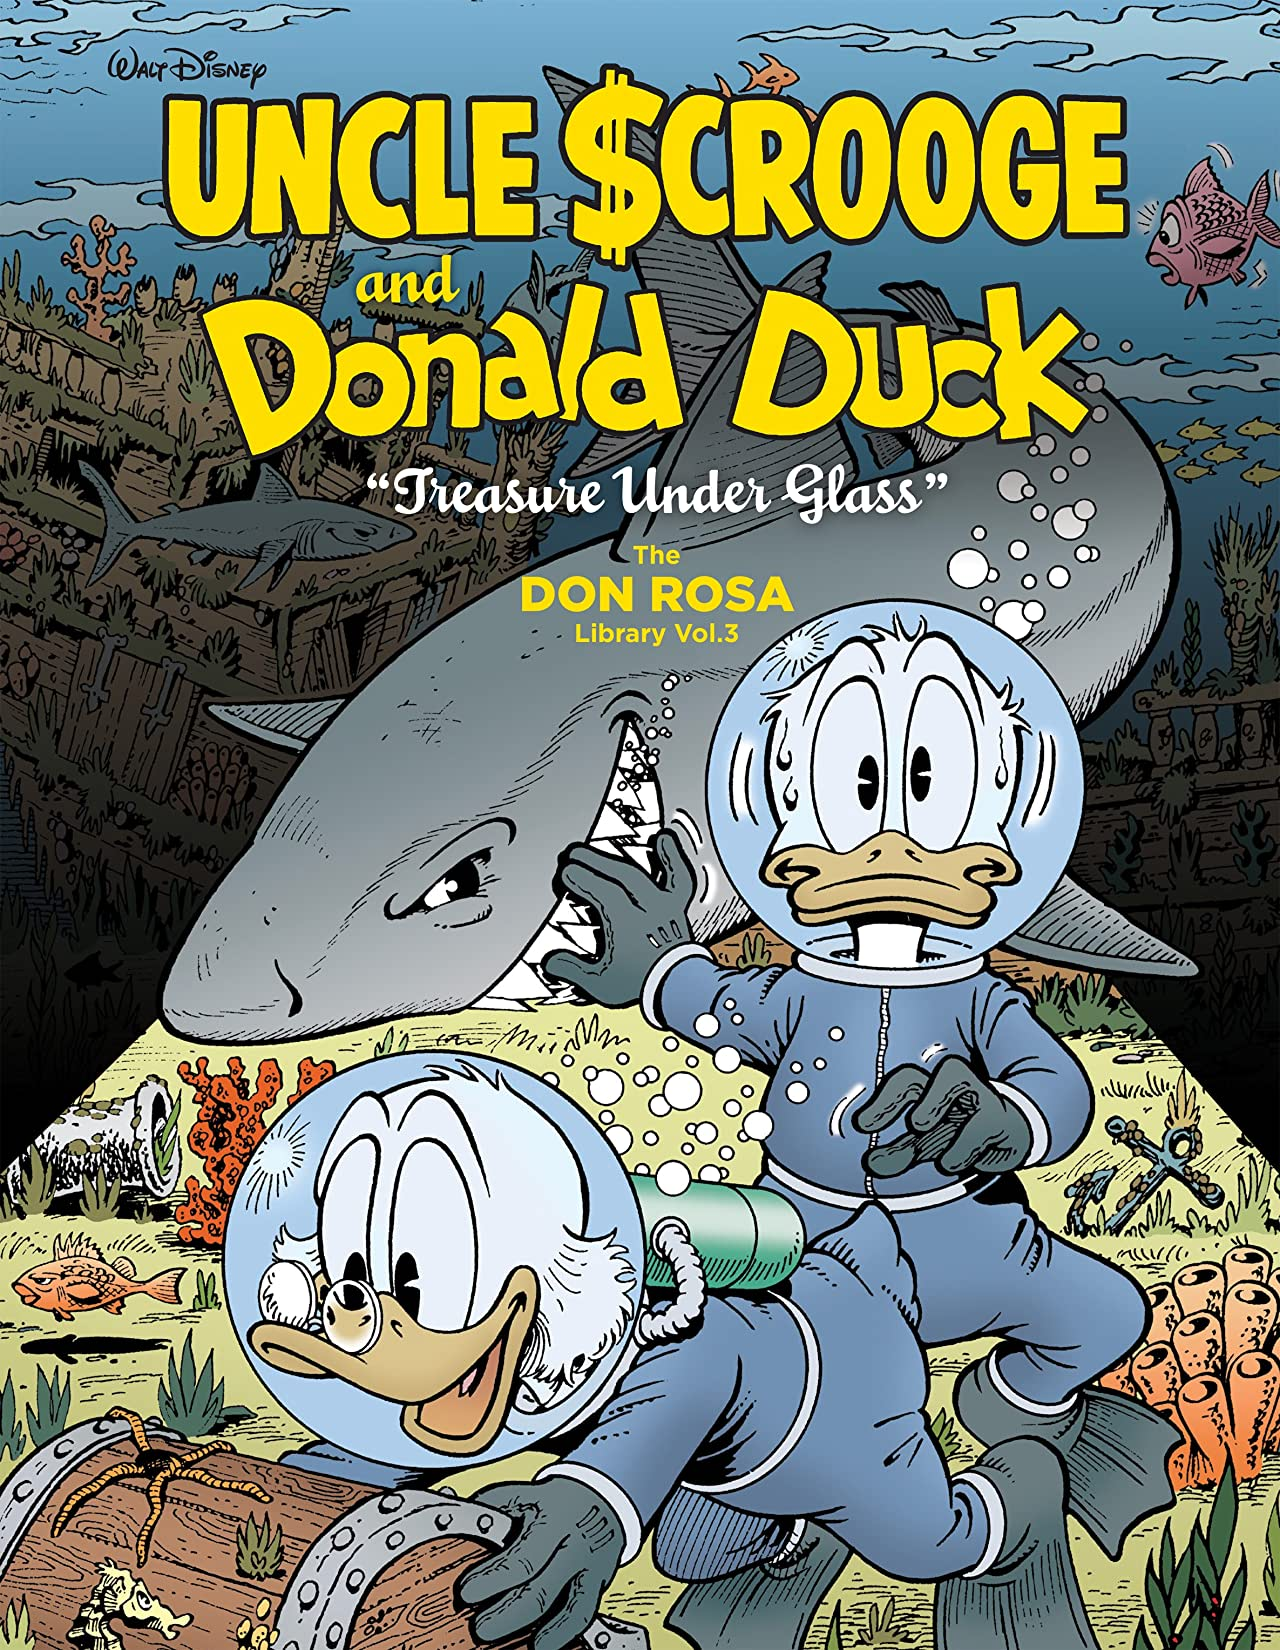 Walt Disney Uncle Scrooge and Donald Duck Vol. 3: Treasure Under Glass